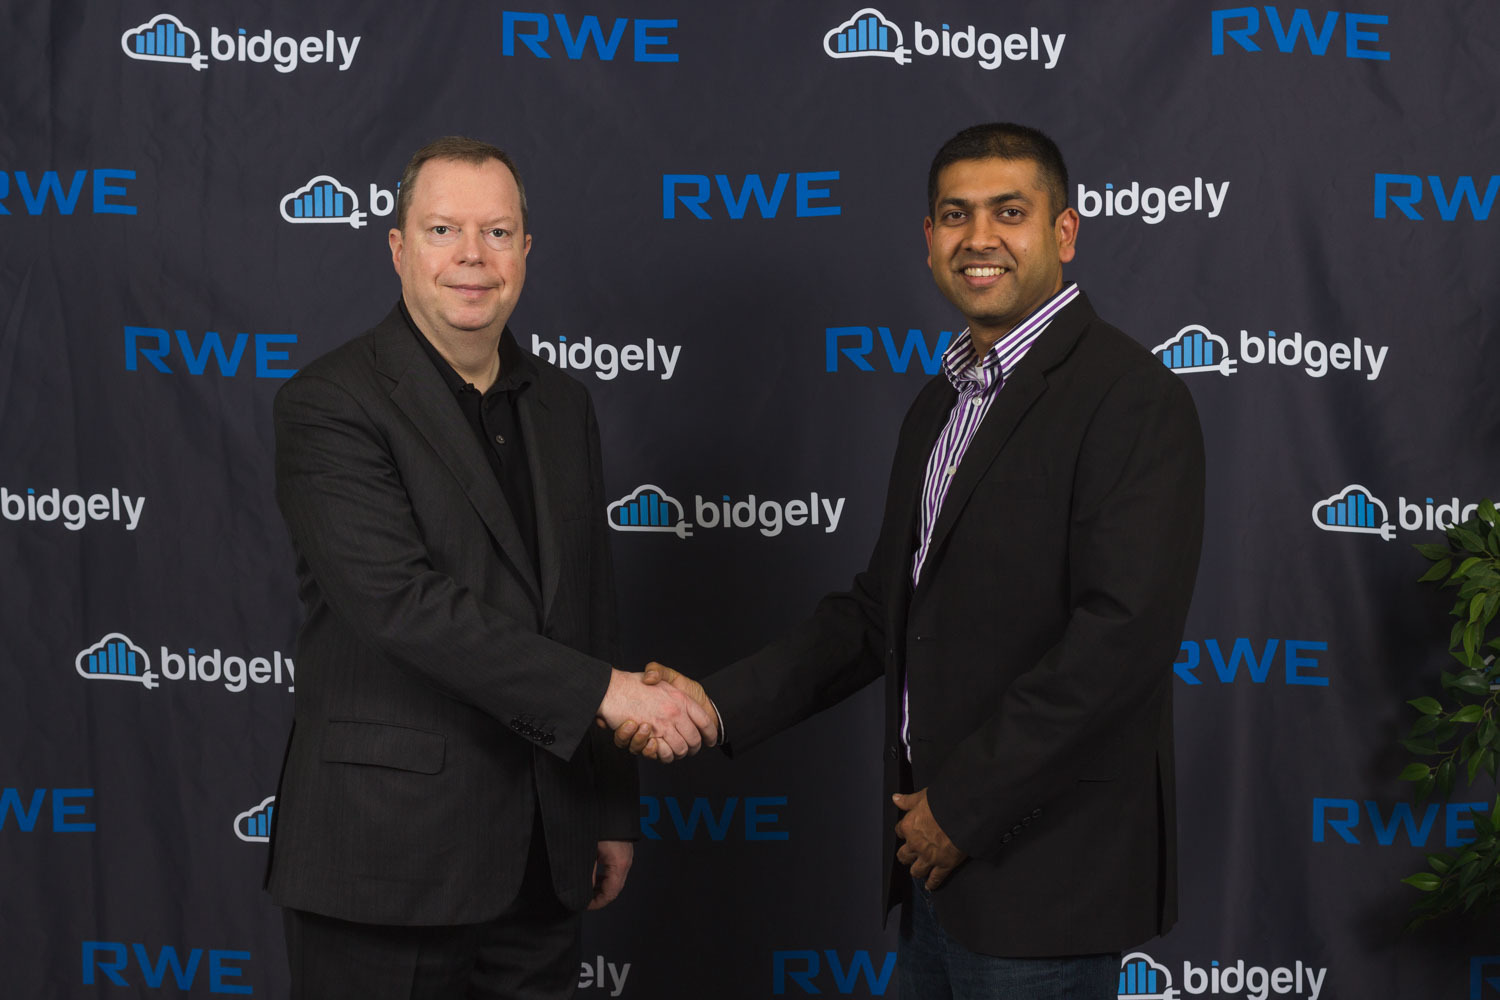 RWE CEO Peter Terium and Bidgely CEO Abhay Gupta officially launch disaggregation in Europe at a ceremony at Bidgely offices in Silicon Valley. (Photo: Business Wire)